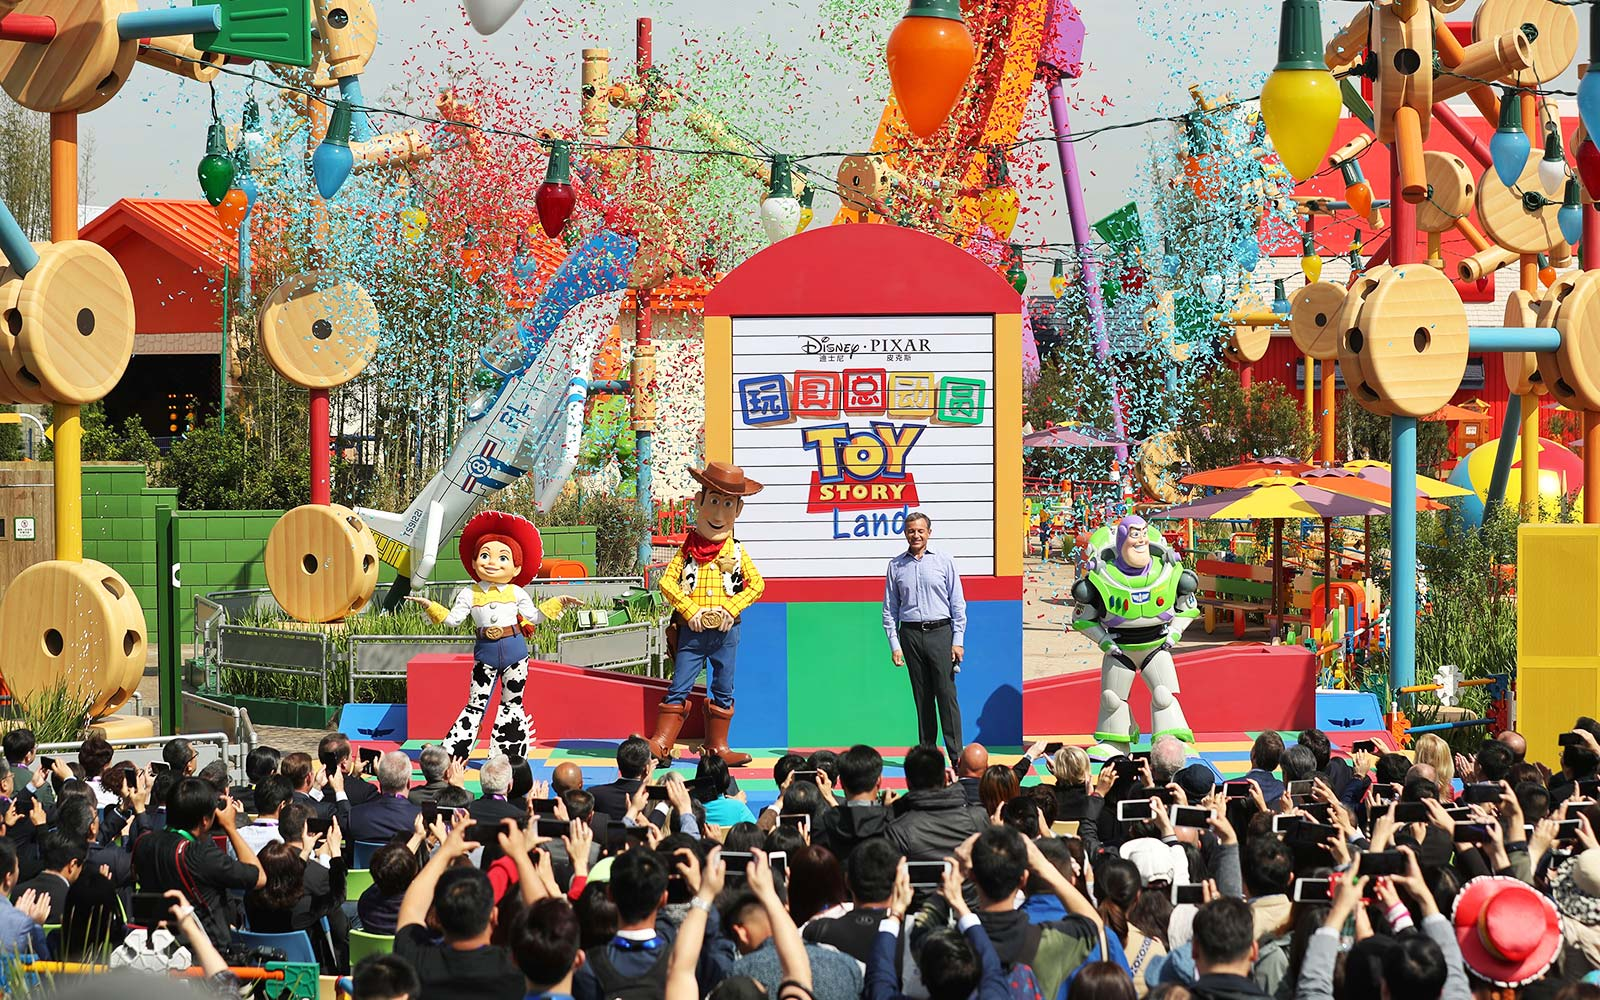 Toy Story Land to feature flying saucer ride, army men march